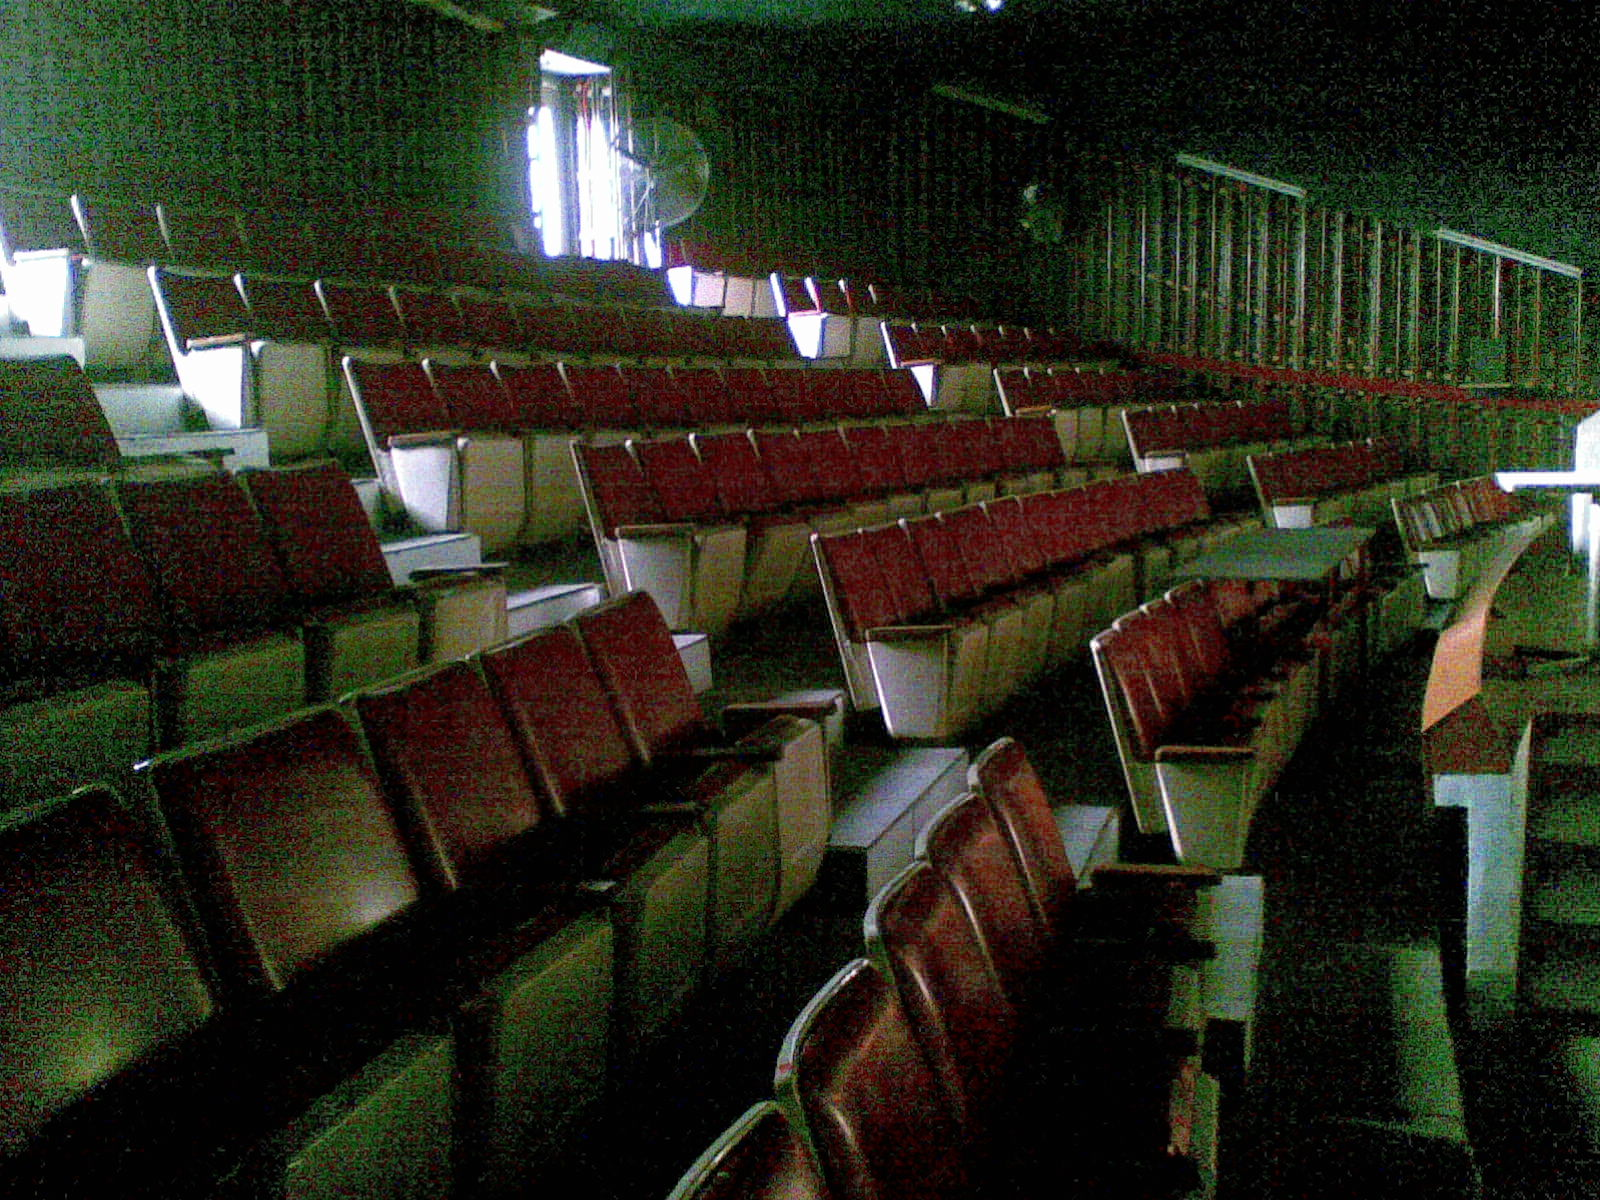 auditorium space